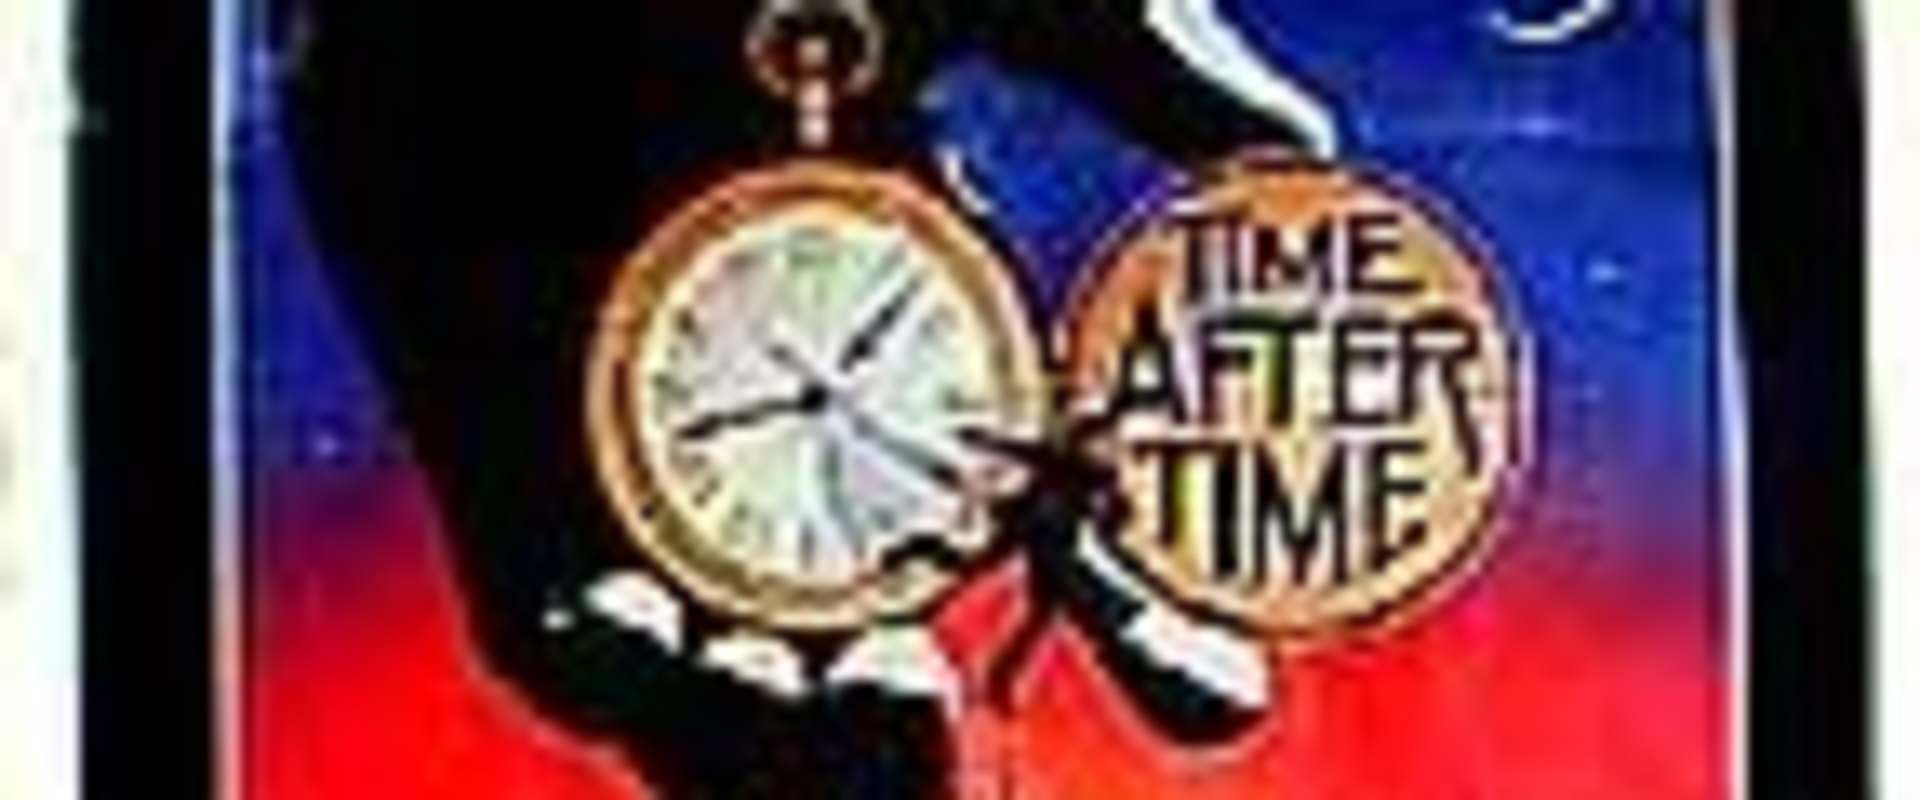 Time After Time background 2